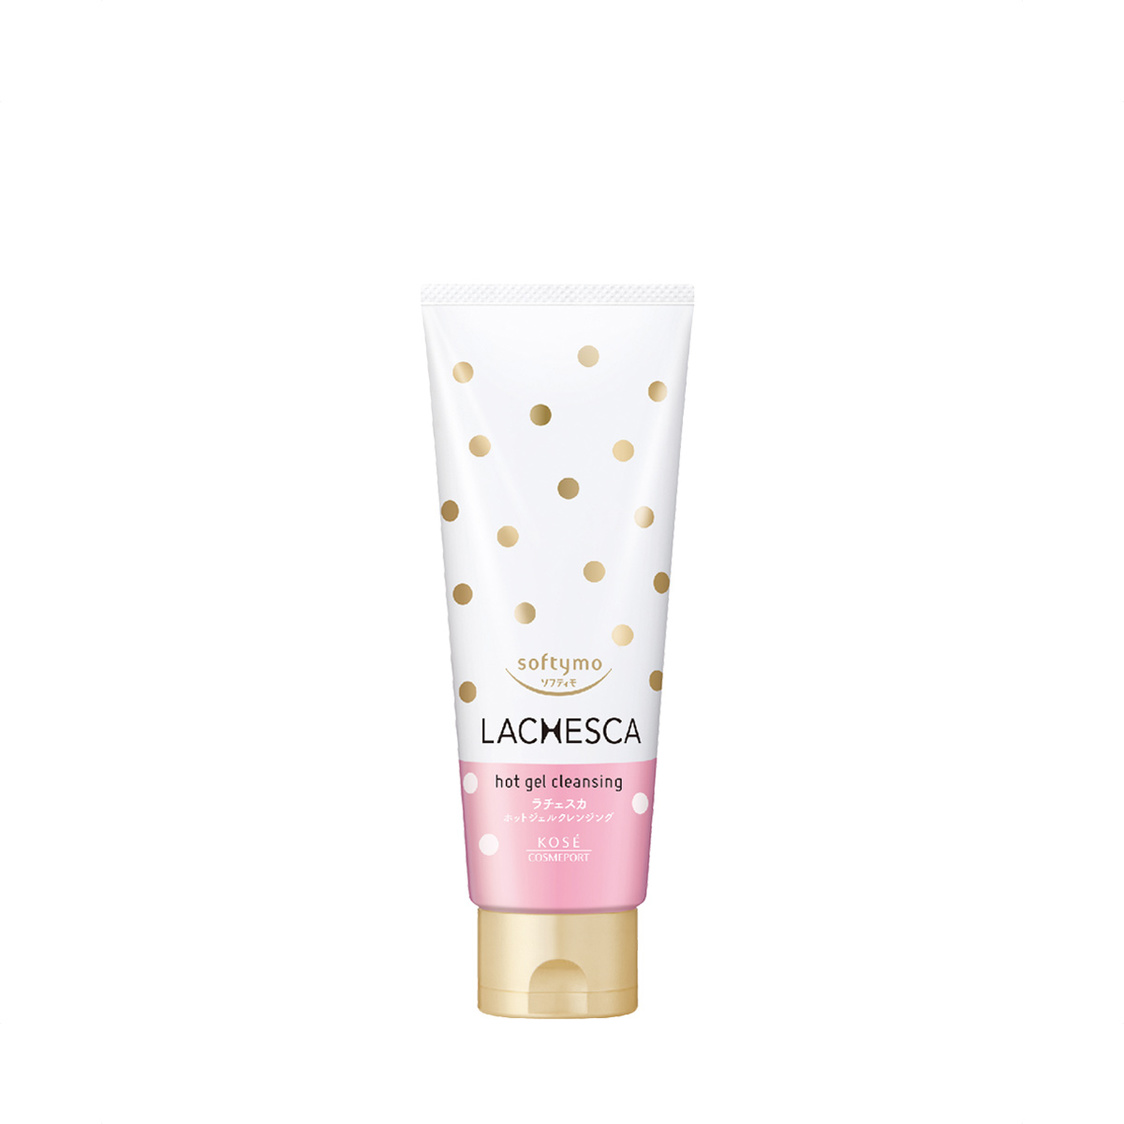 Softymo Lachesca Hot Gel Cleansing